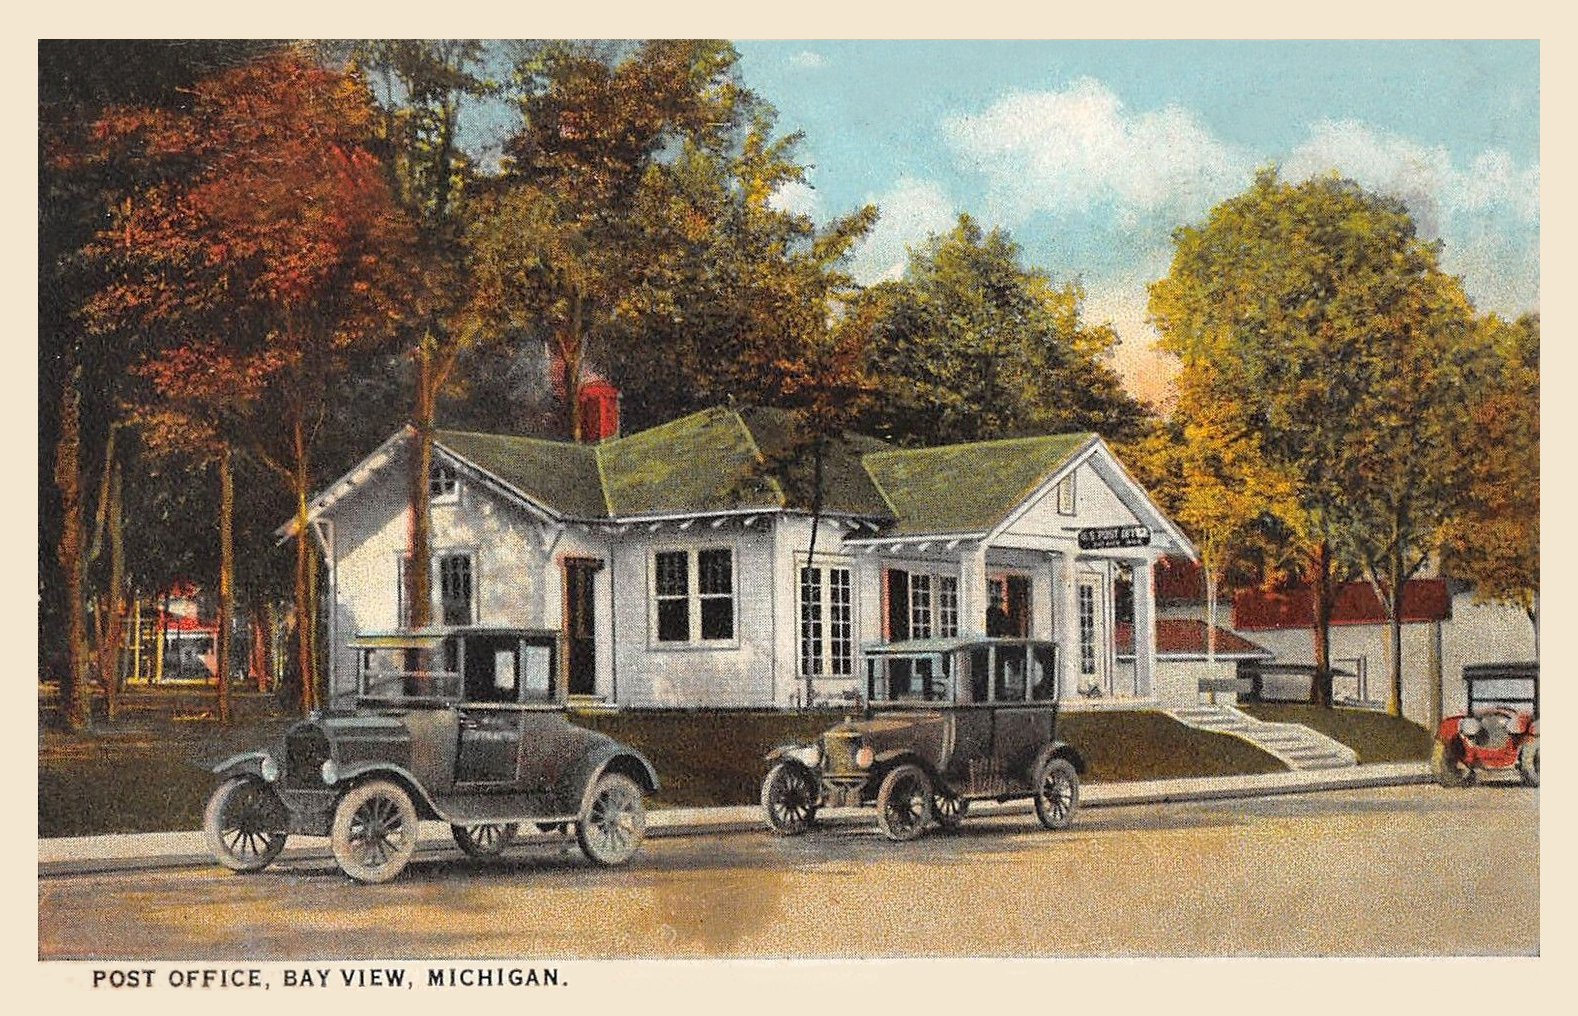 Bay View Michigan Post Office 1928